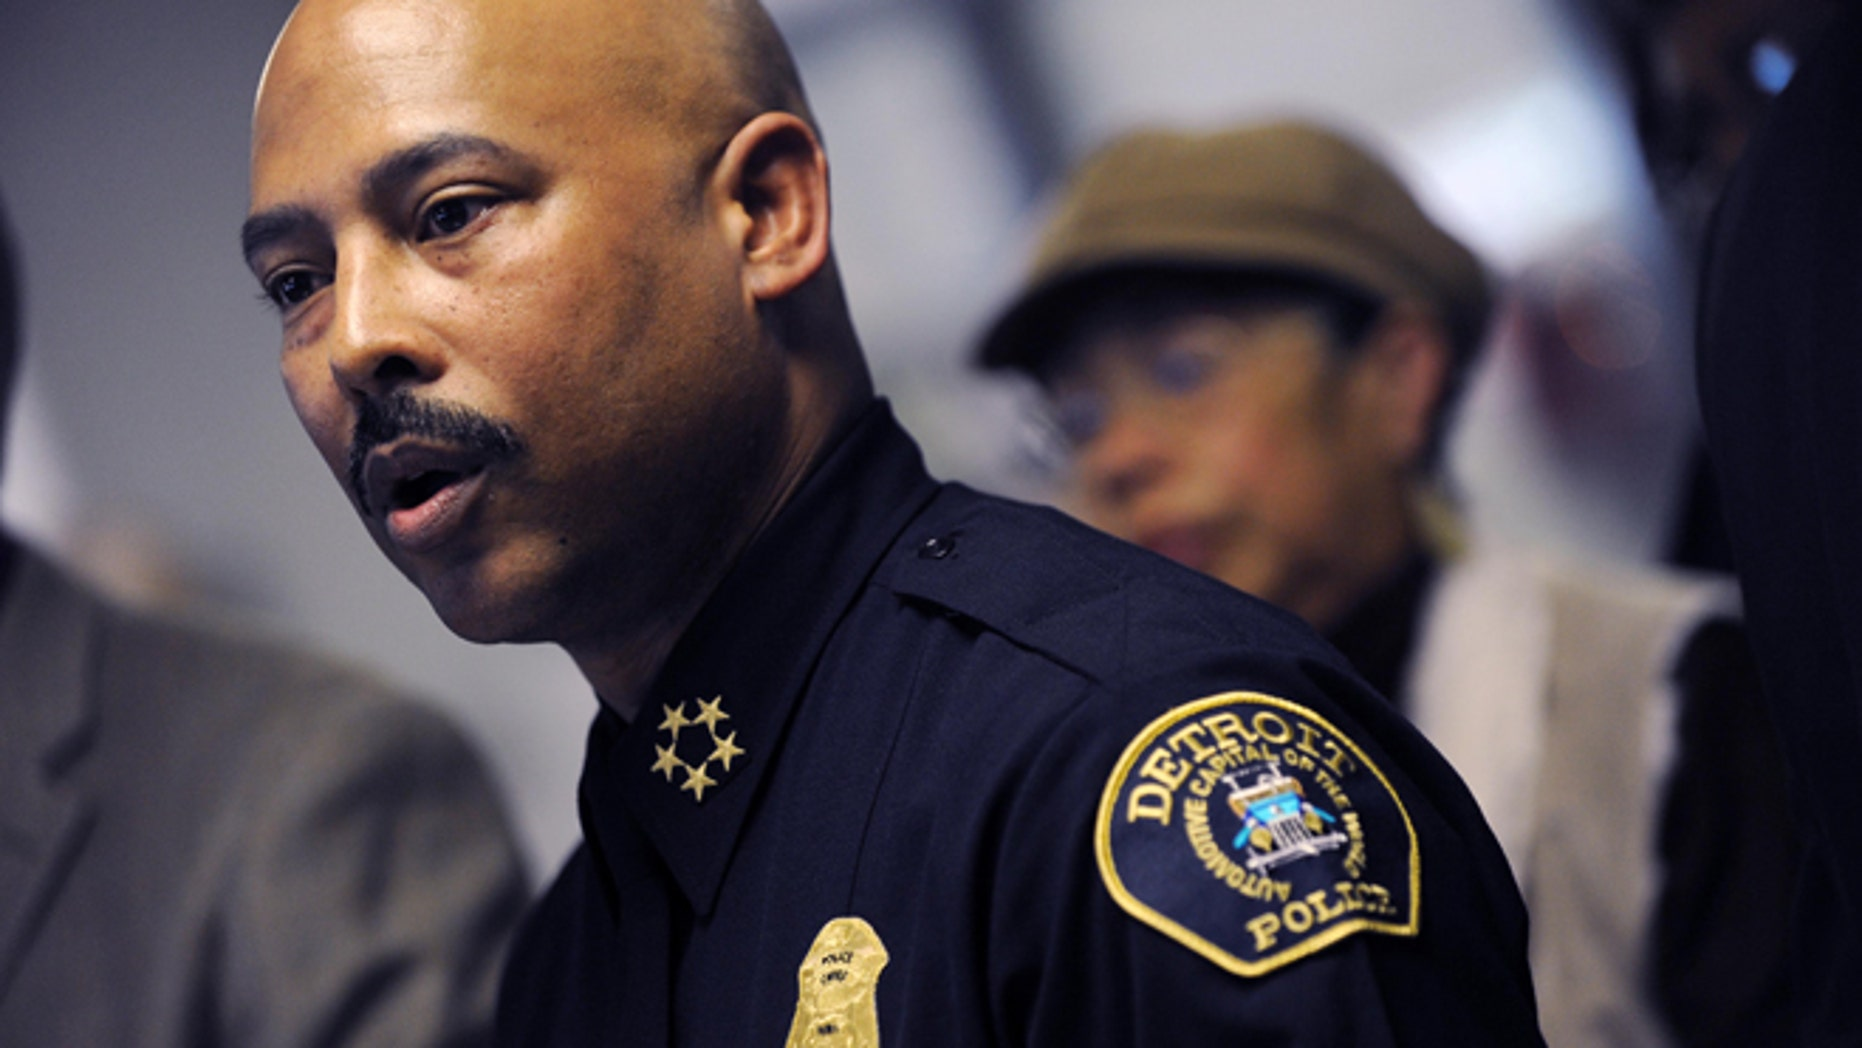 Jan. 5, 2012: Detroit Police Chief Ralph Godbee speaks during a news conference at the Northeastern District Police Station, in Detroit.